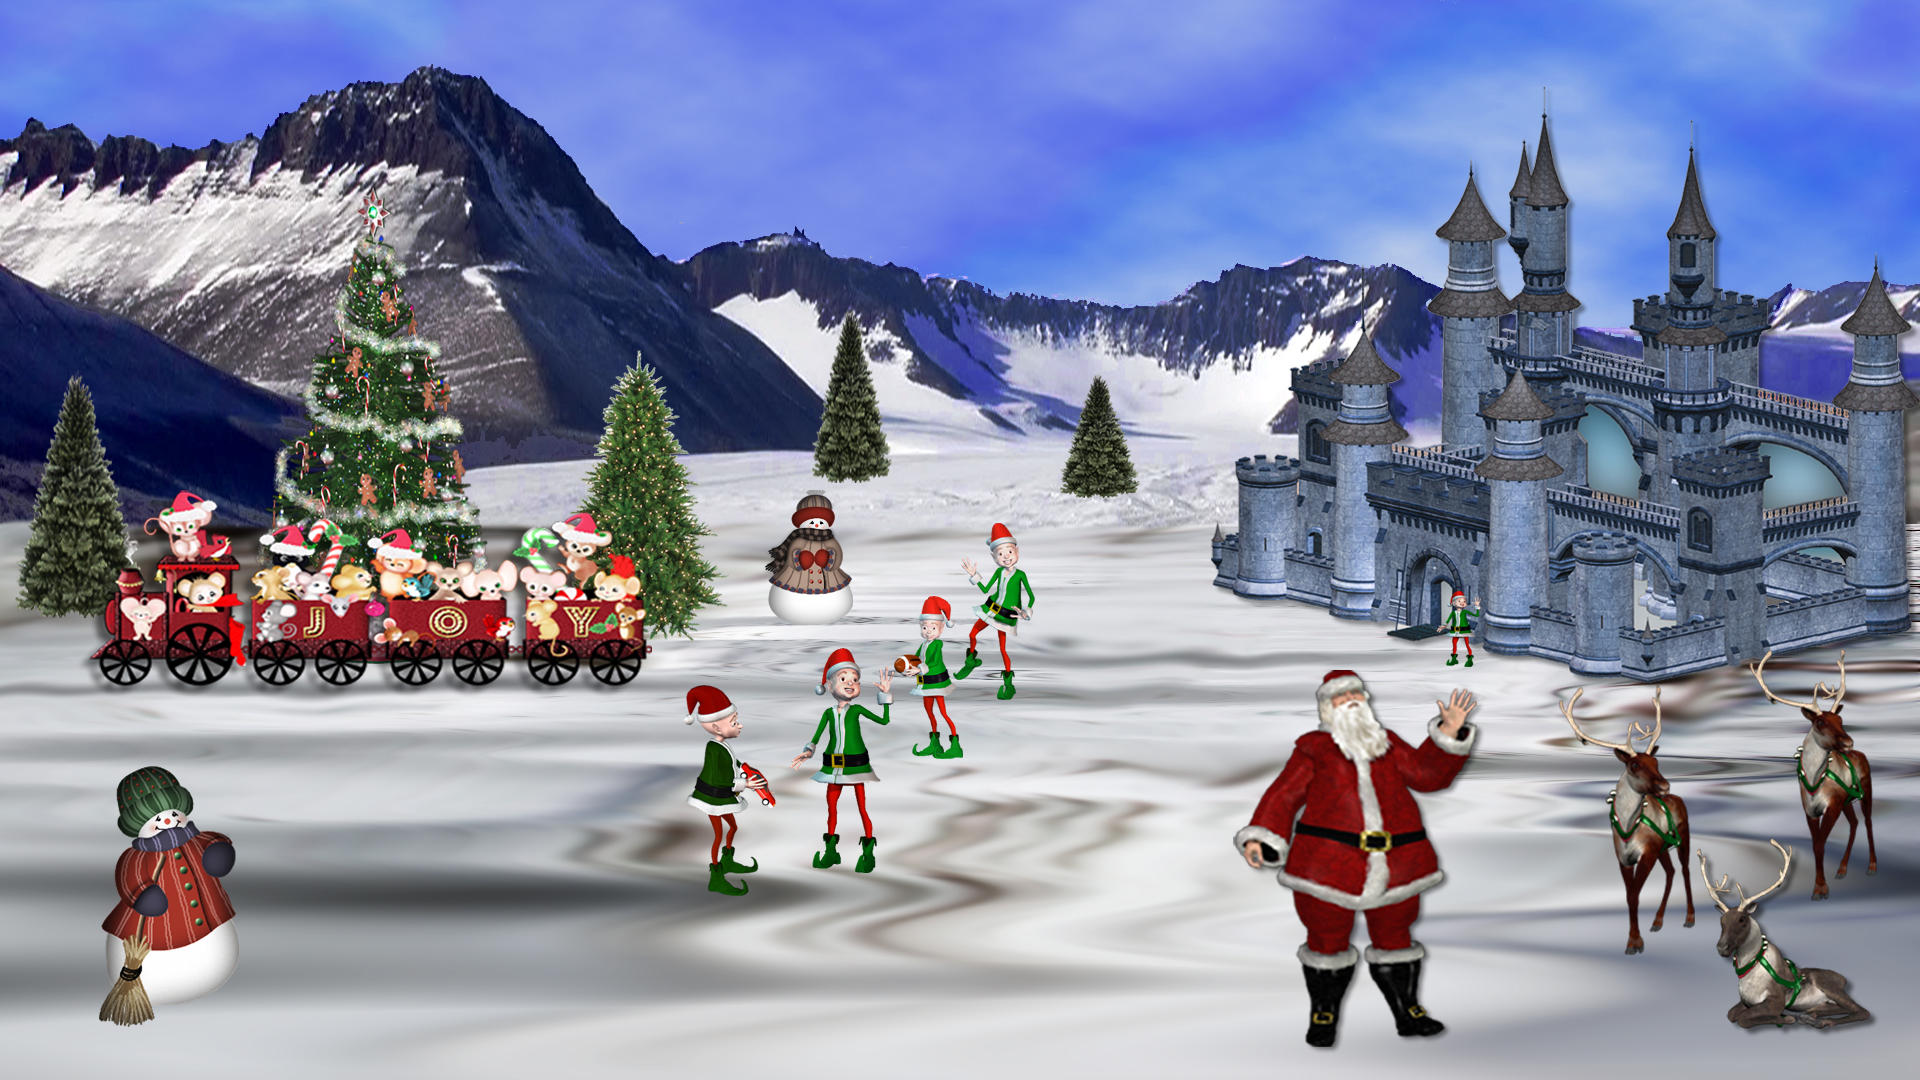 Christmas Northpole by Frankief on DeviantArt